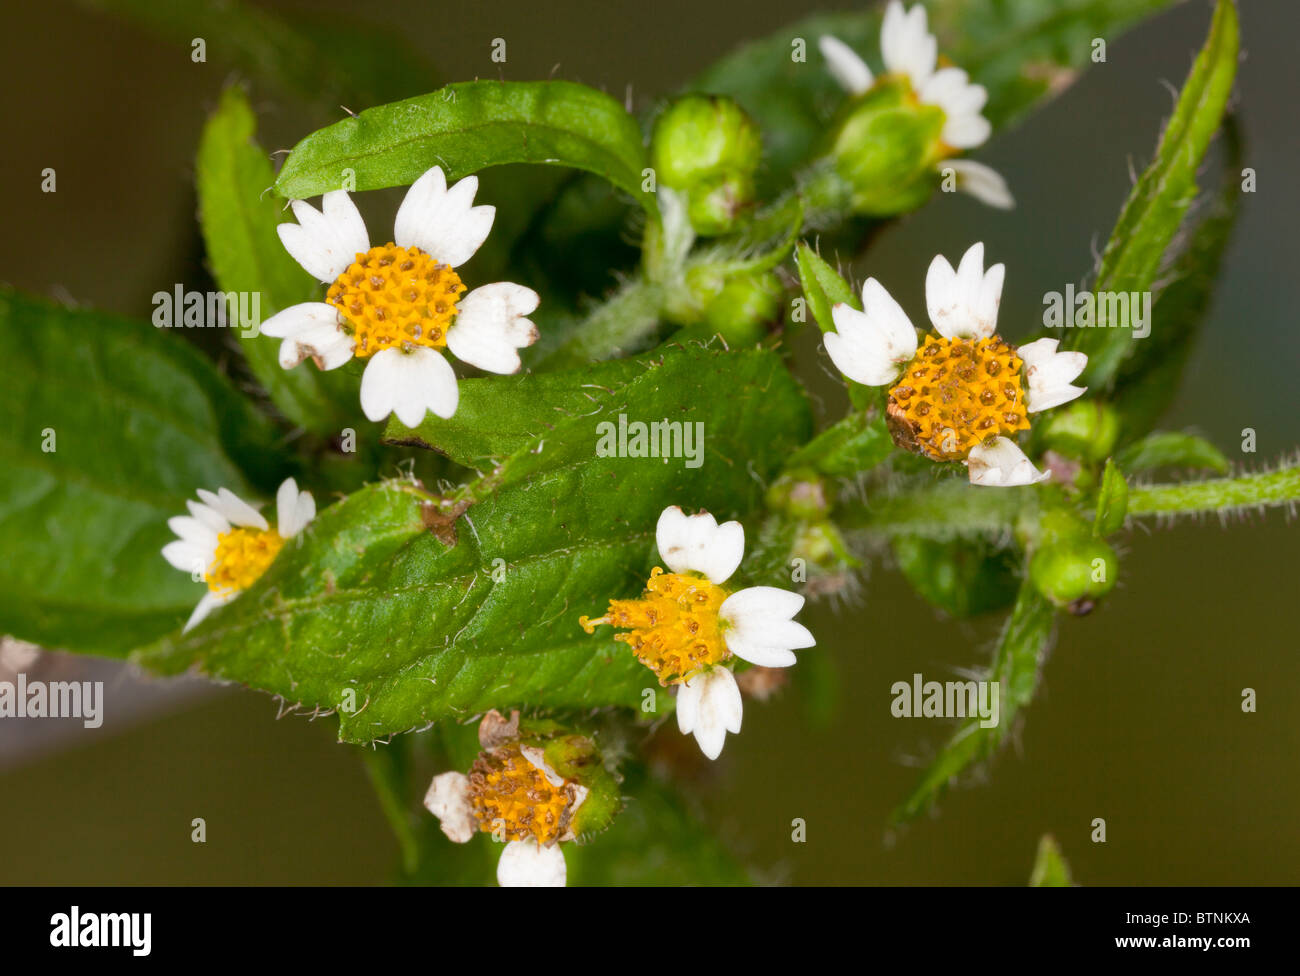 Gallant Soldier, Galinsoga parviflora; widespread introduced weed from South America. - Stock Image